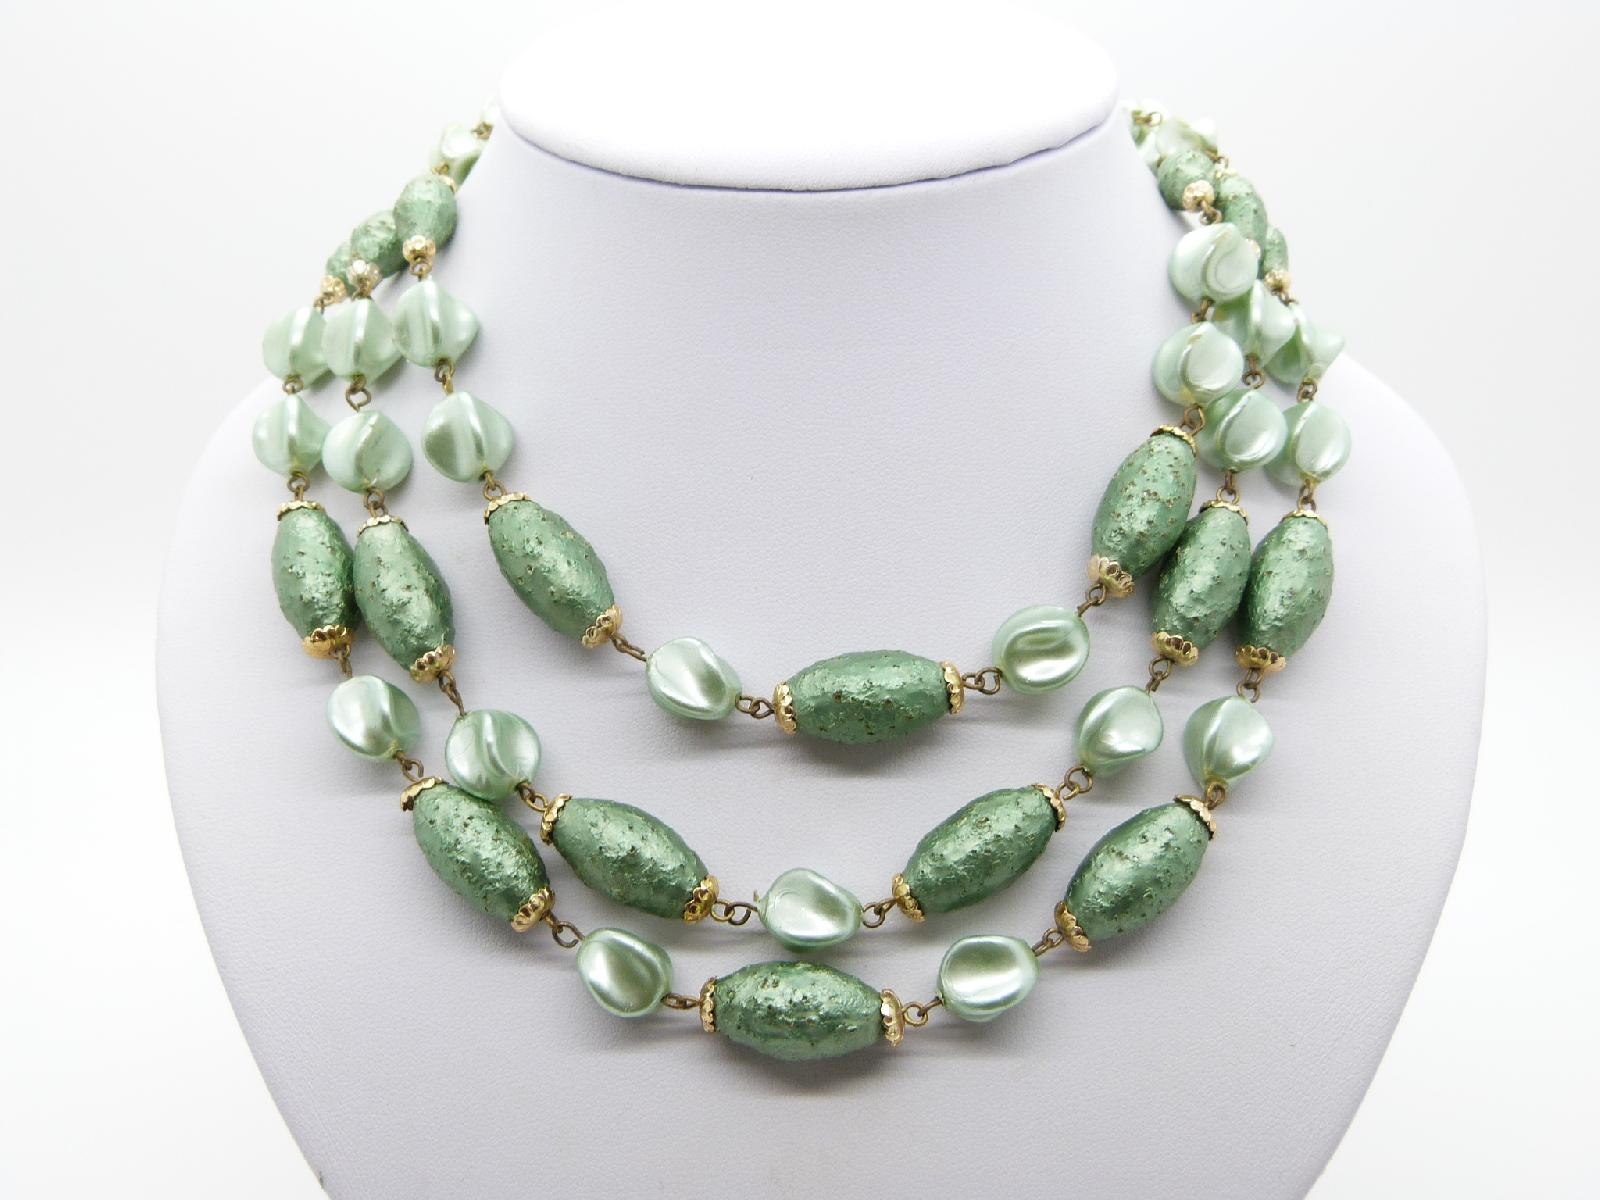 Vintage 50s Fab Three Row Two Tone Green Textured Lucite Bead Necklace